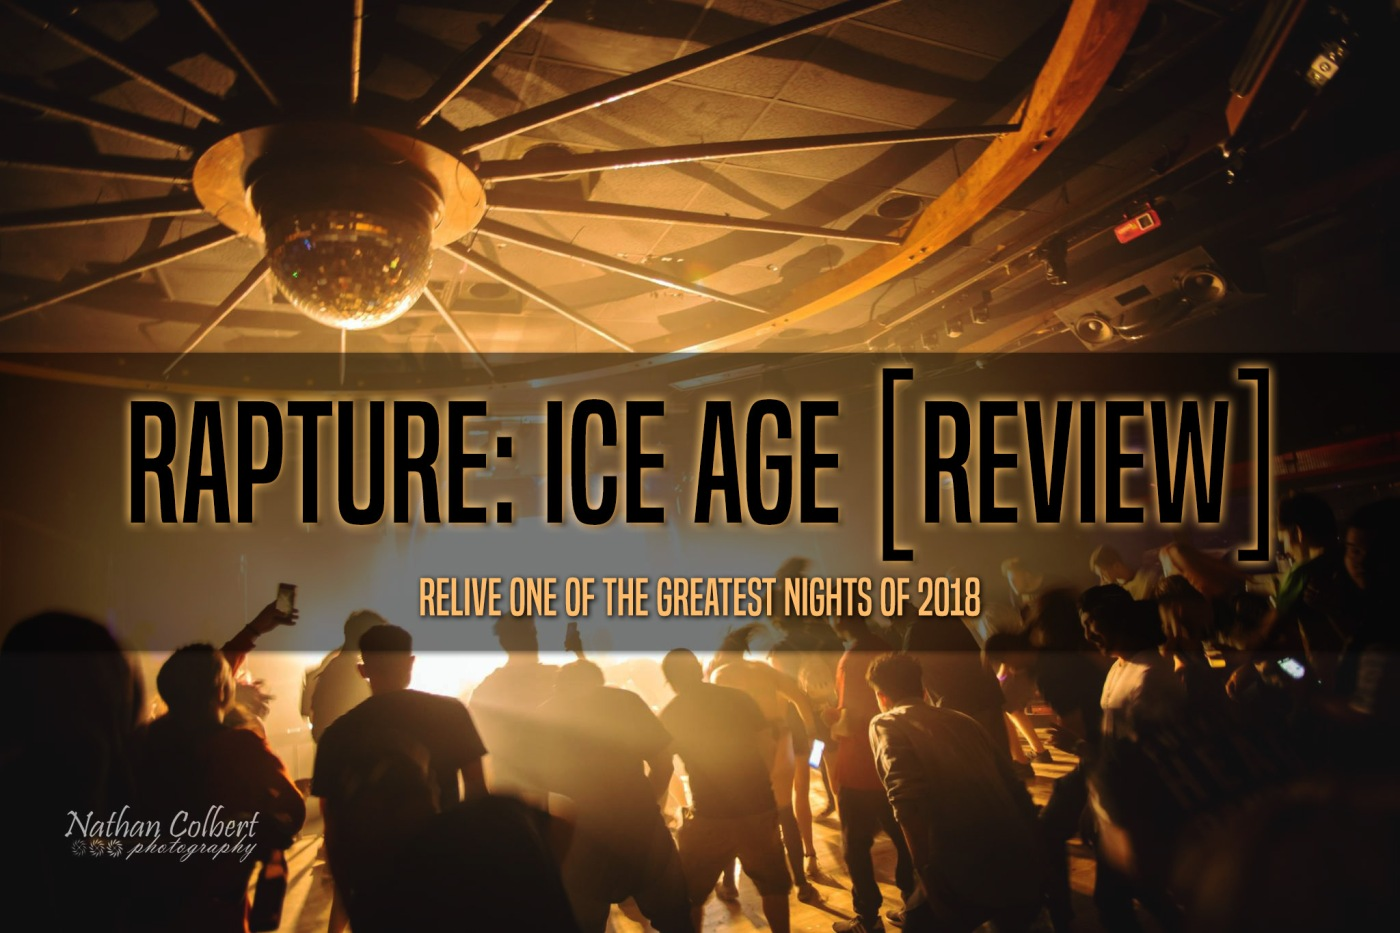 We Review] Rapture: Ice Age  – TRILLVO